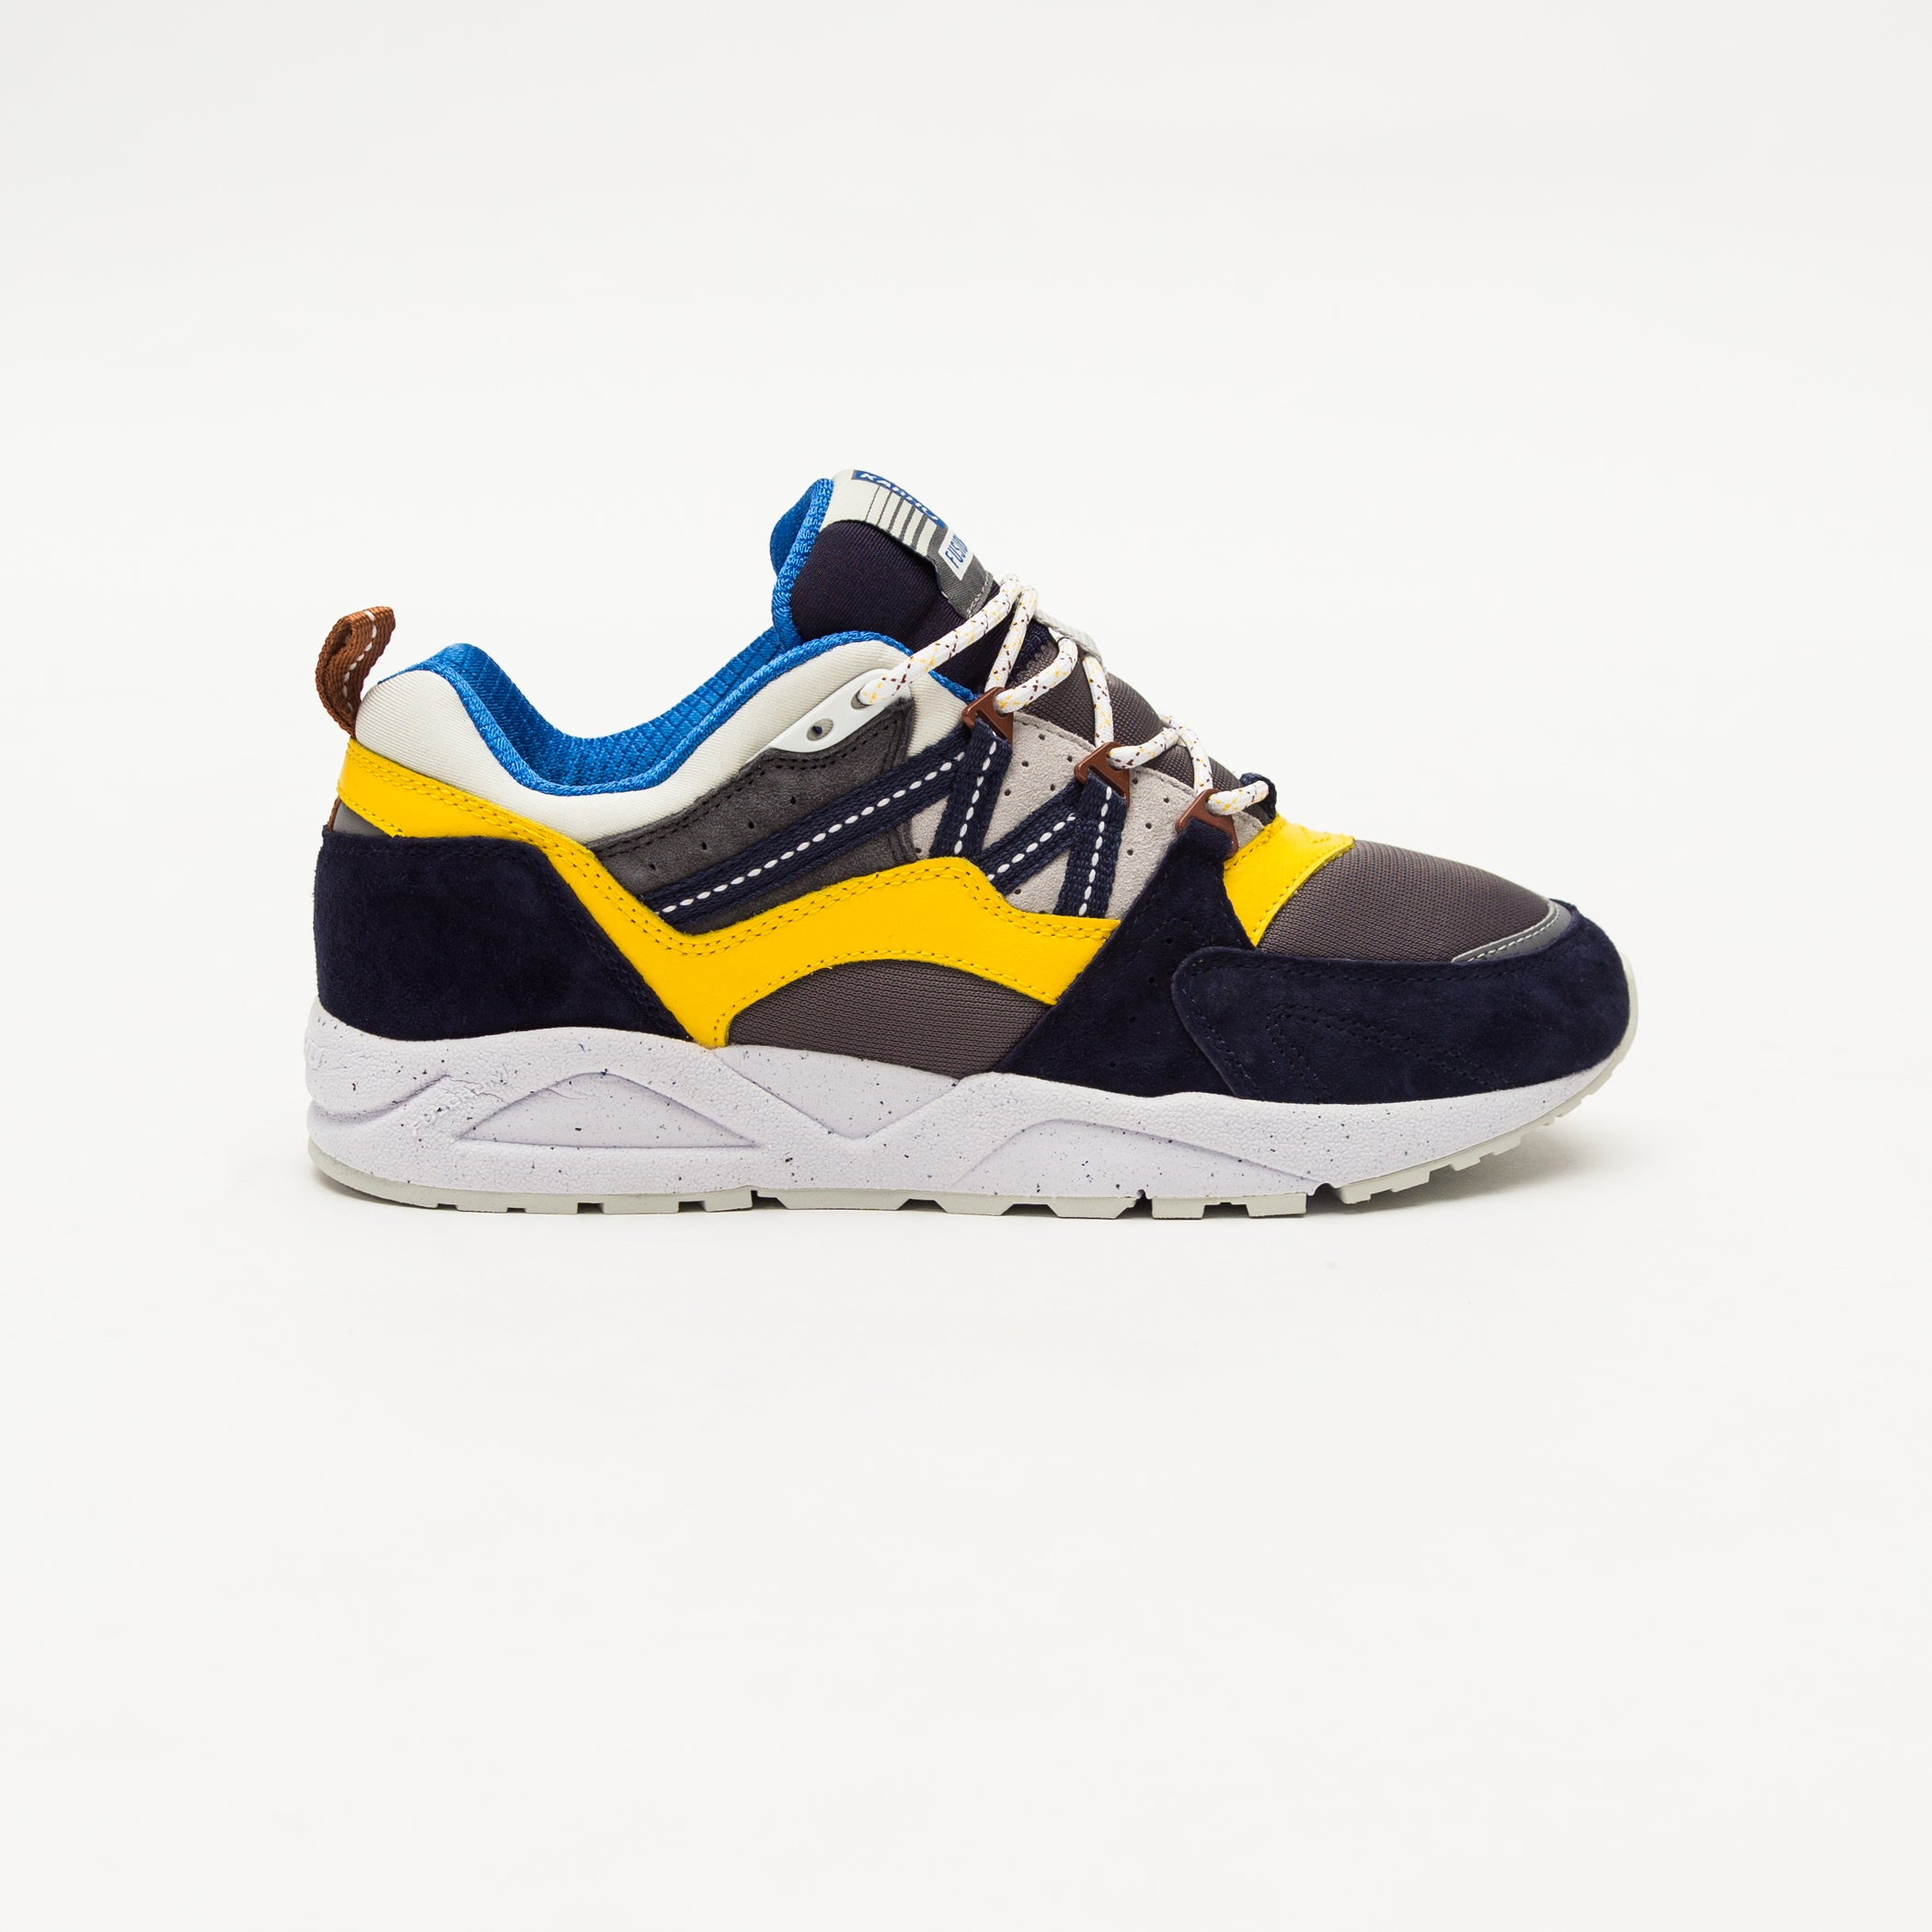 Karhu - Fusion 2.0 'Cross-Country Ski Pack'